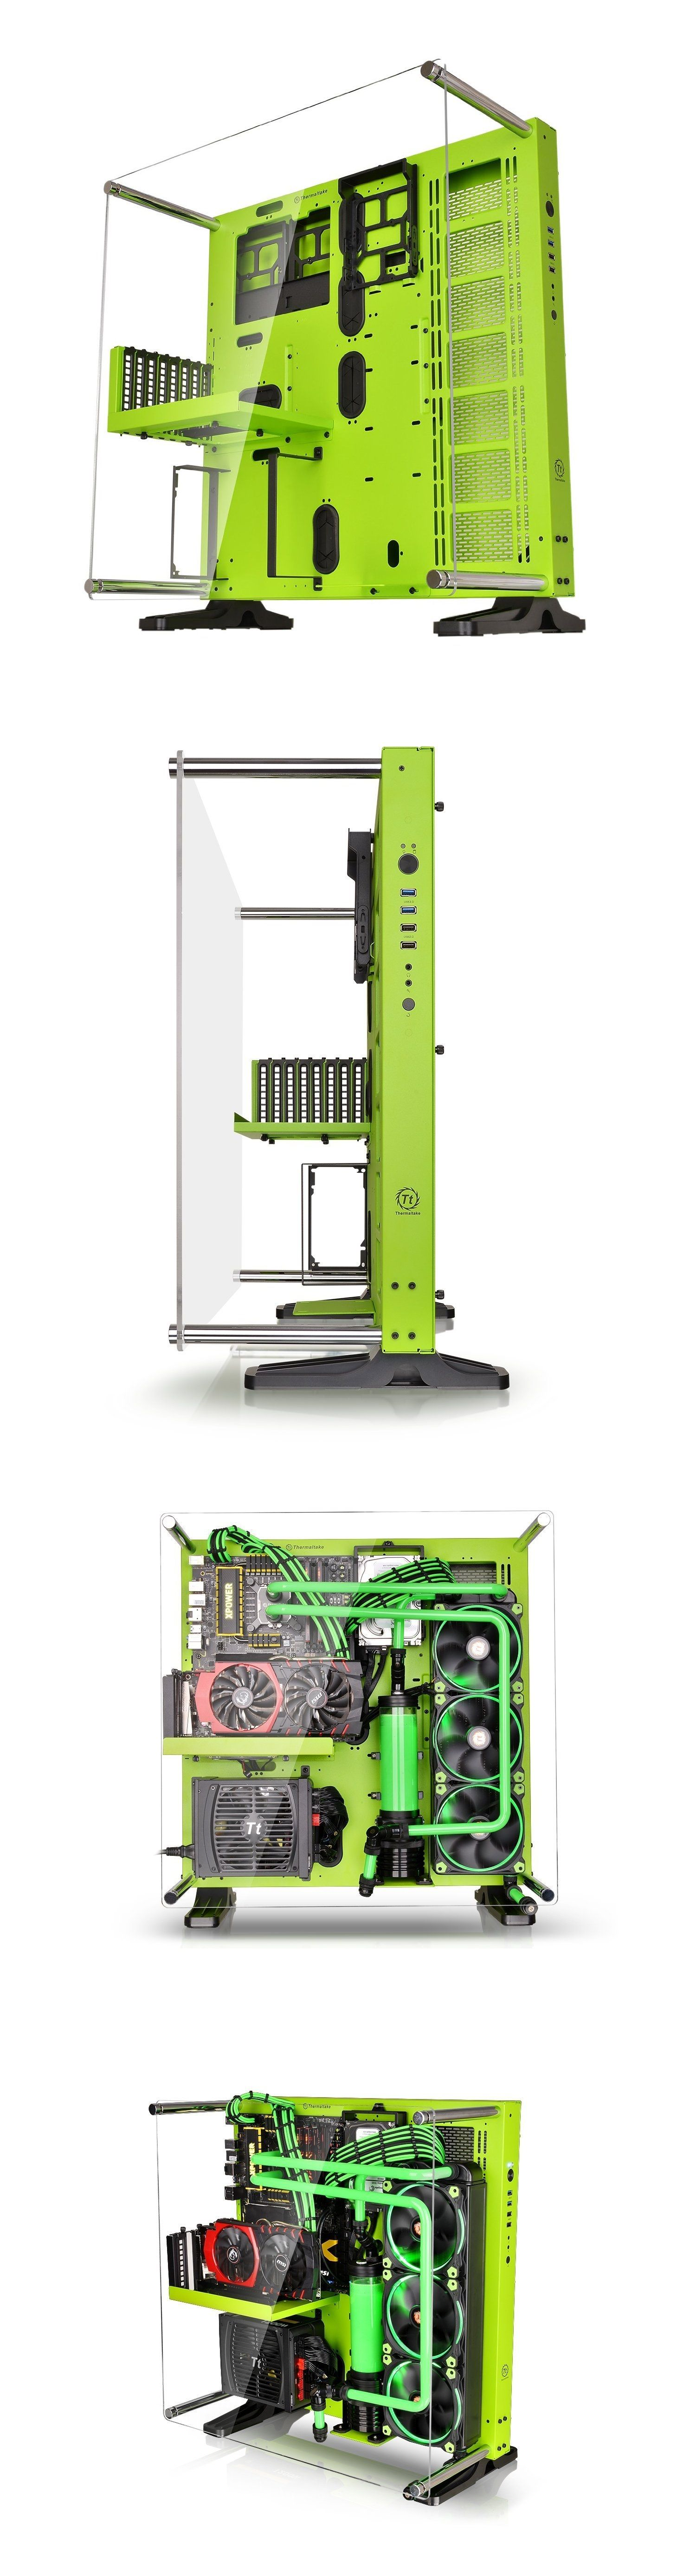 Thermaltake CORE P5 Green Edition ATX Open Frame Mid Tower Liquid Cooling\u2026